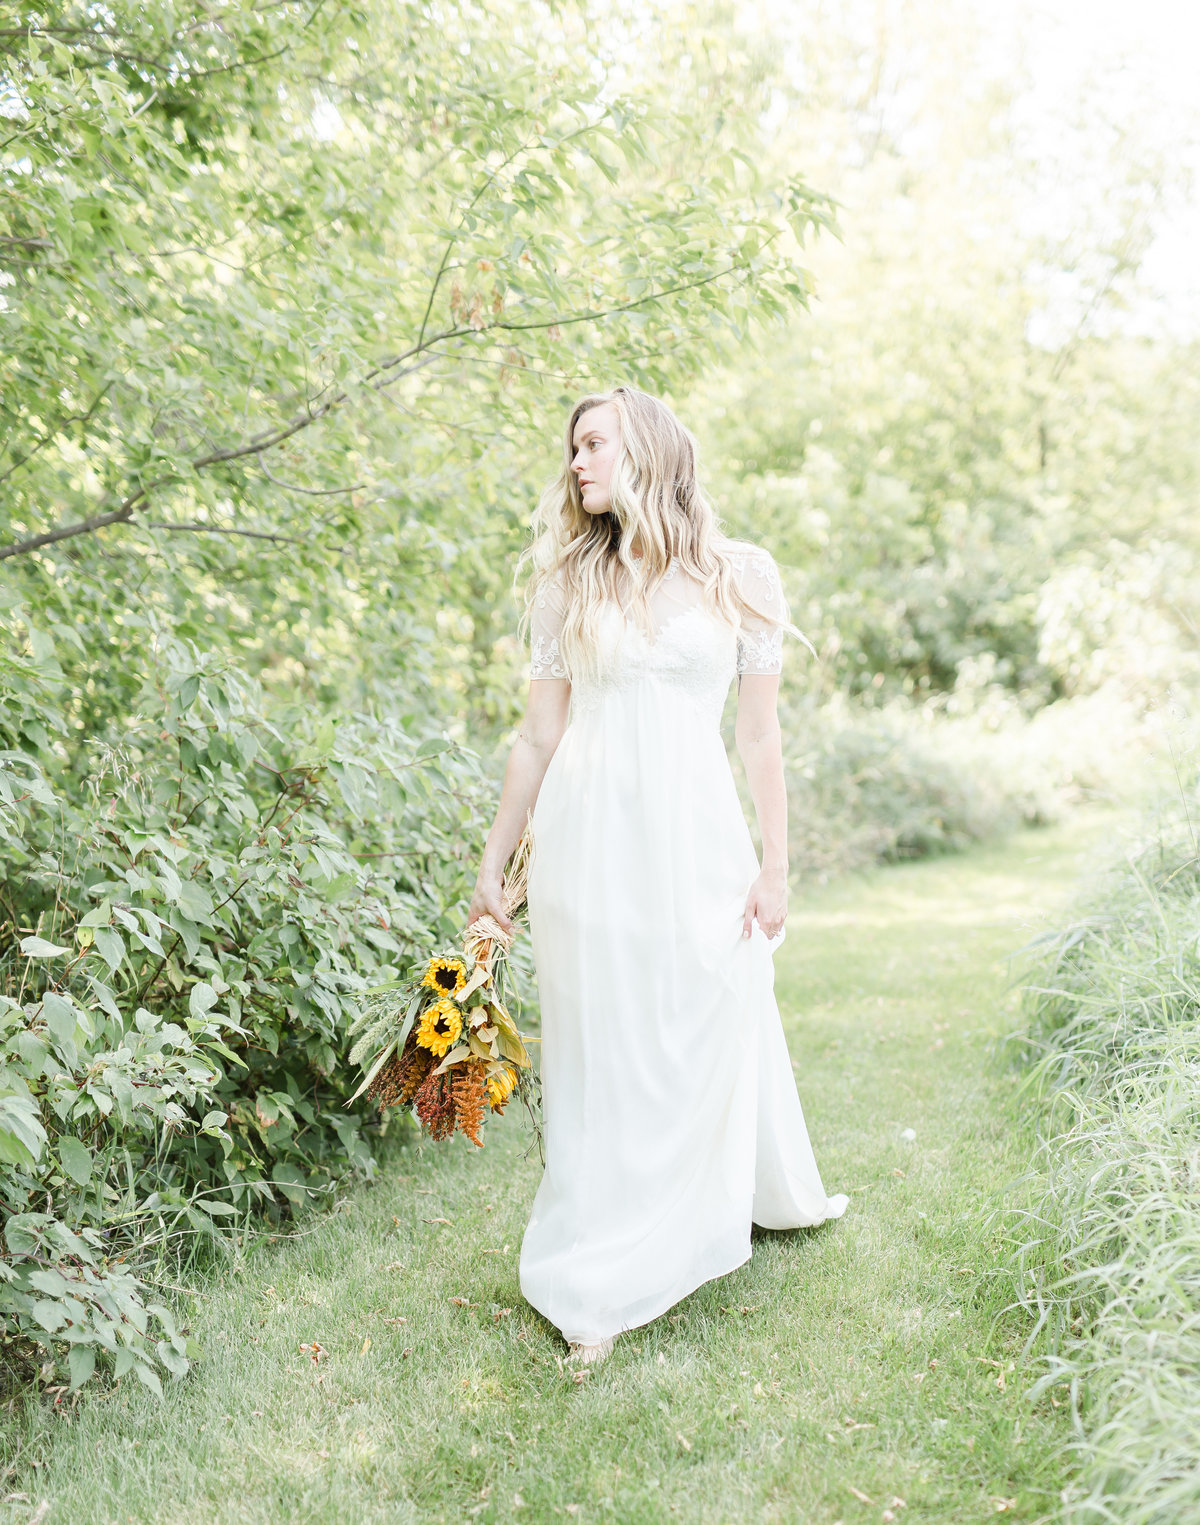 Kailey - Styled Shoot - New Edits-10